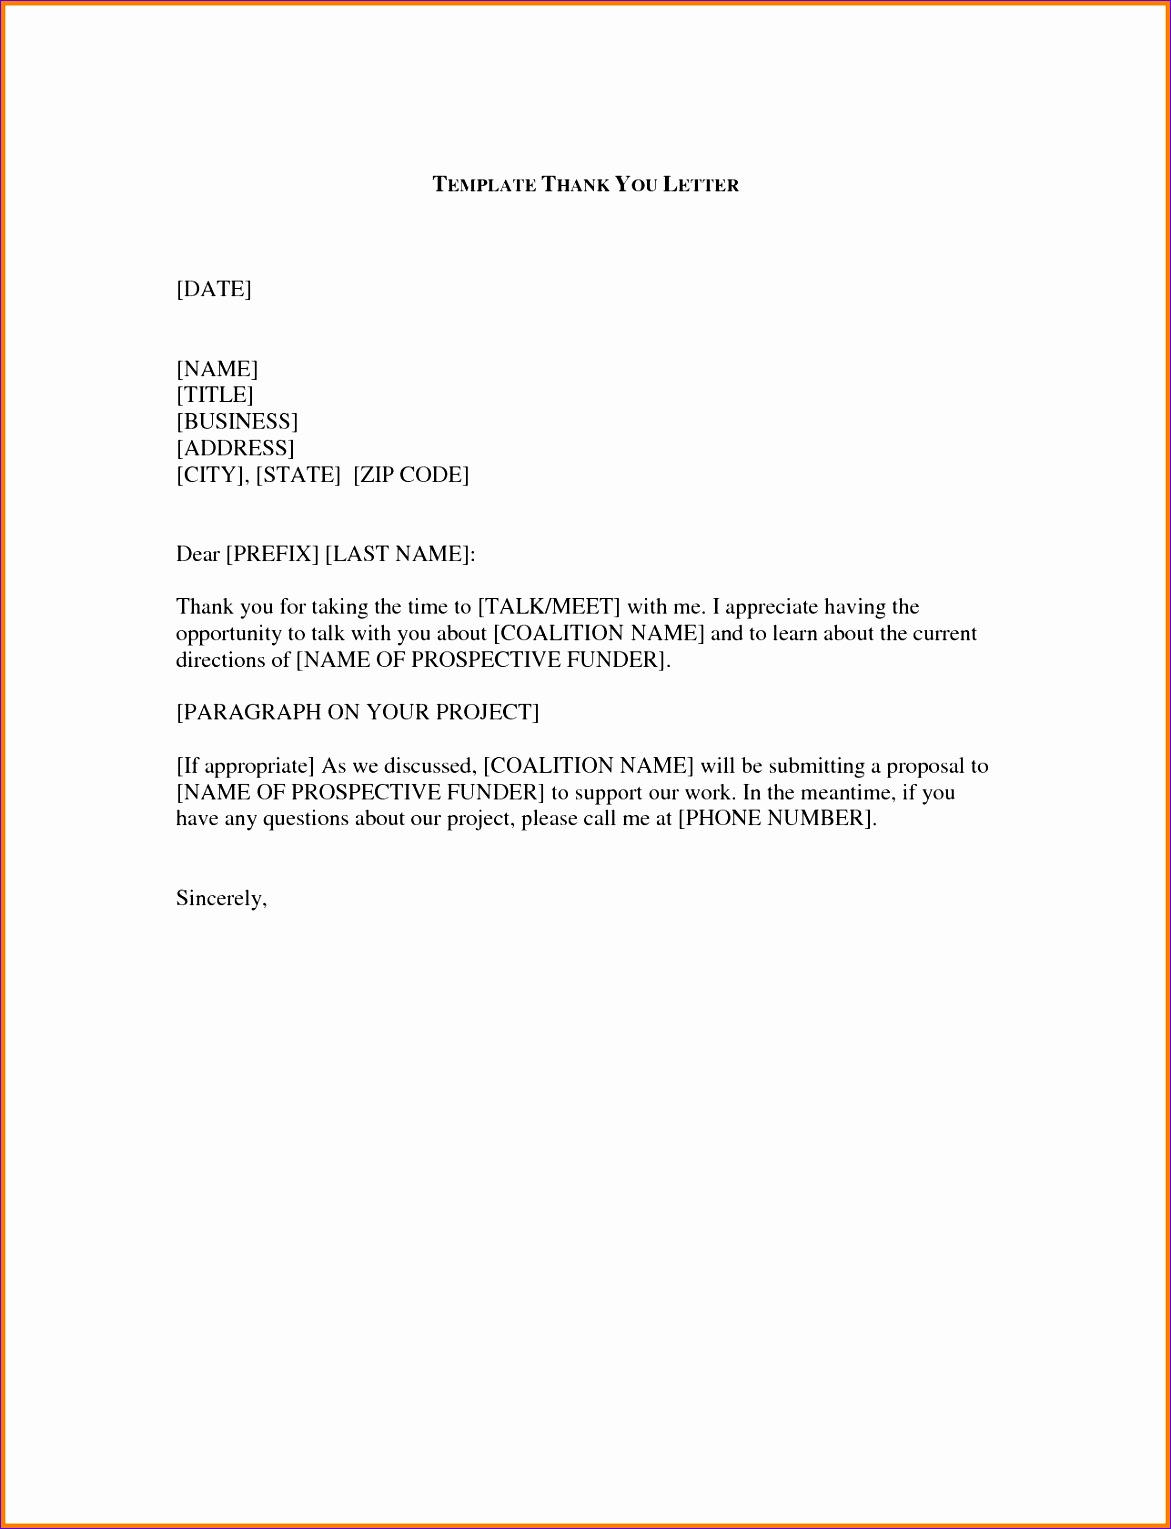 sample thank you for your time business letter 11711529